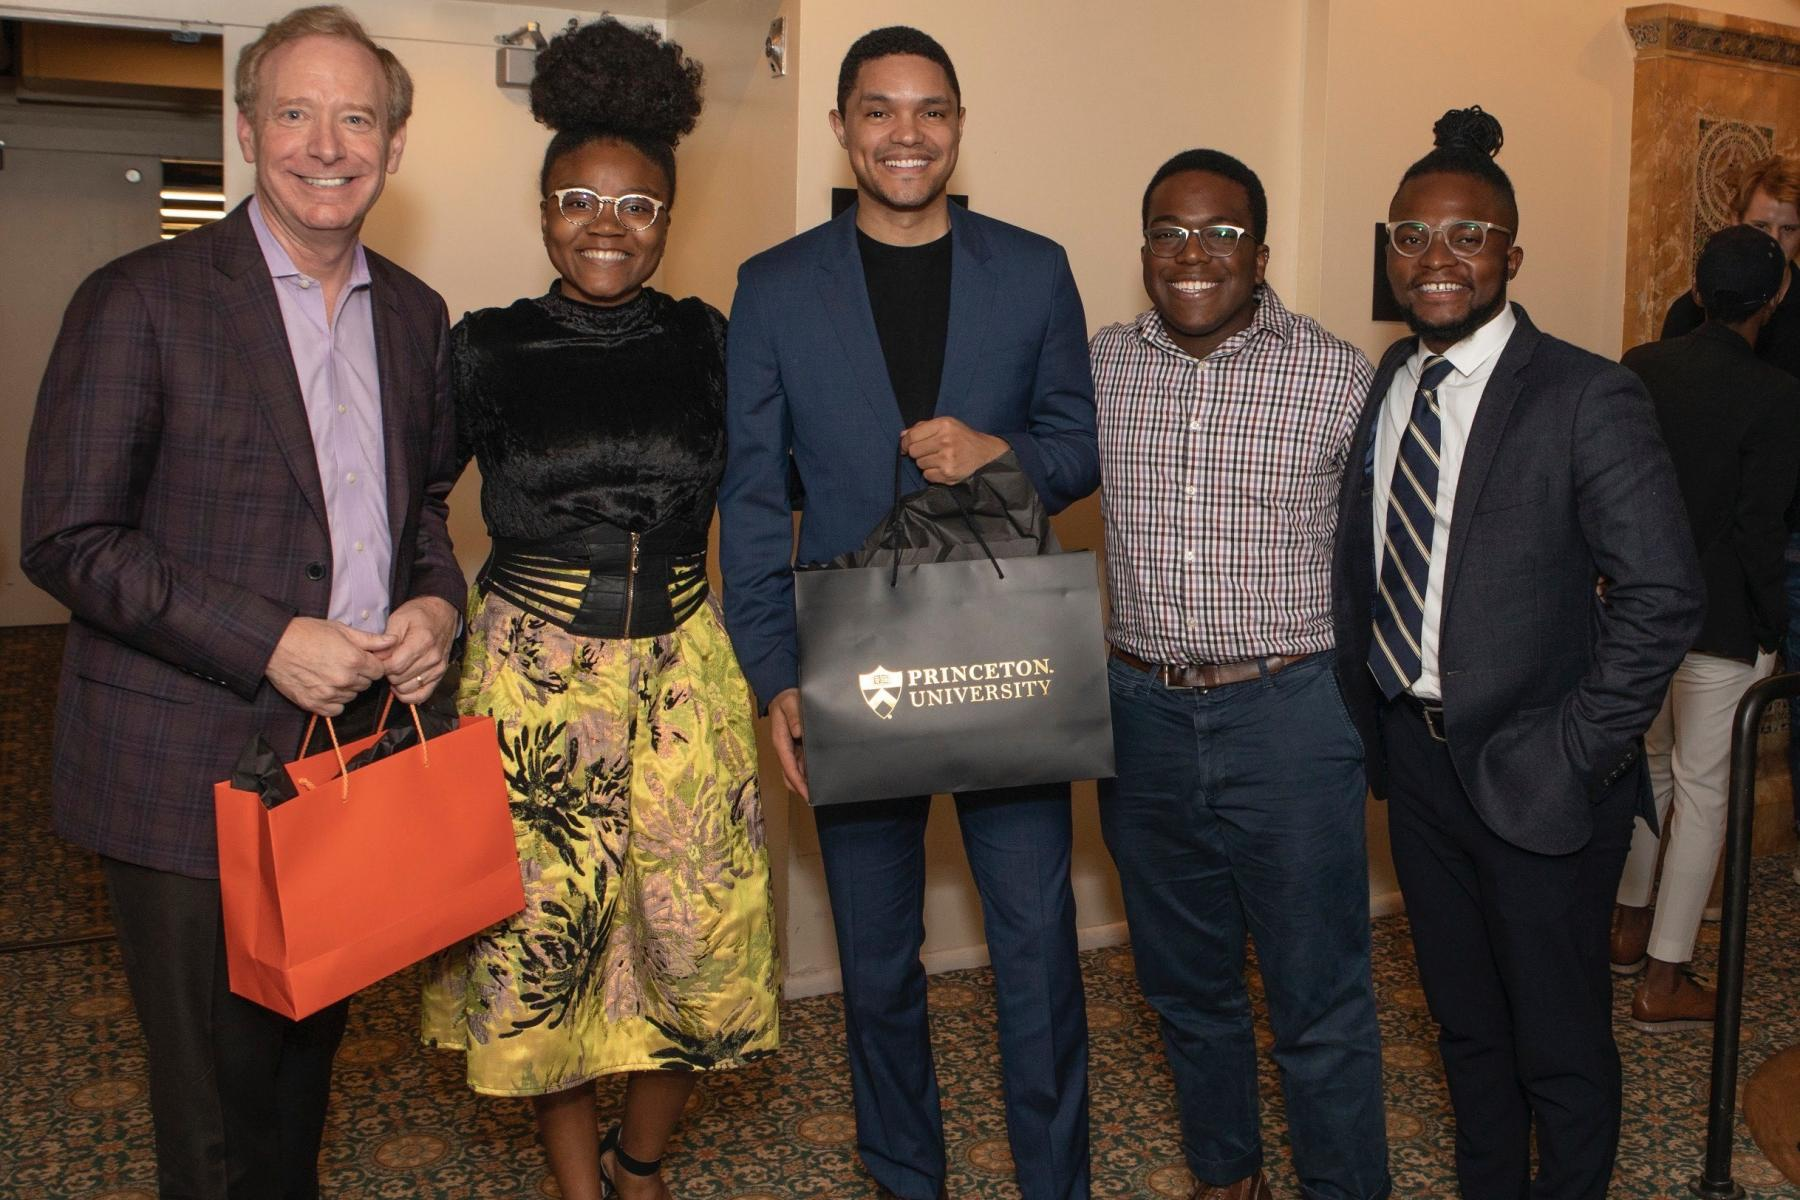 Princeton alumni and students with Brad Smith '81 and Trevor Noah.